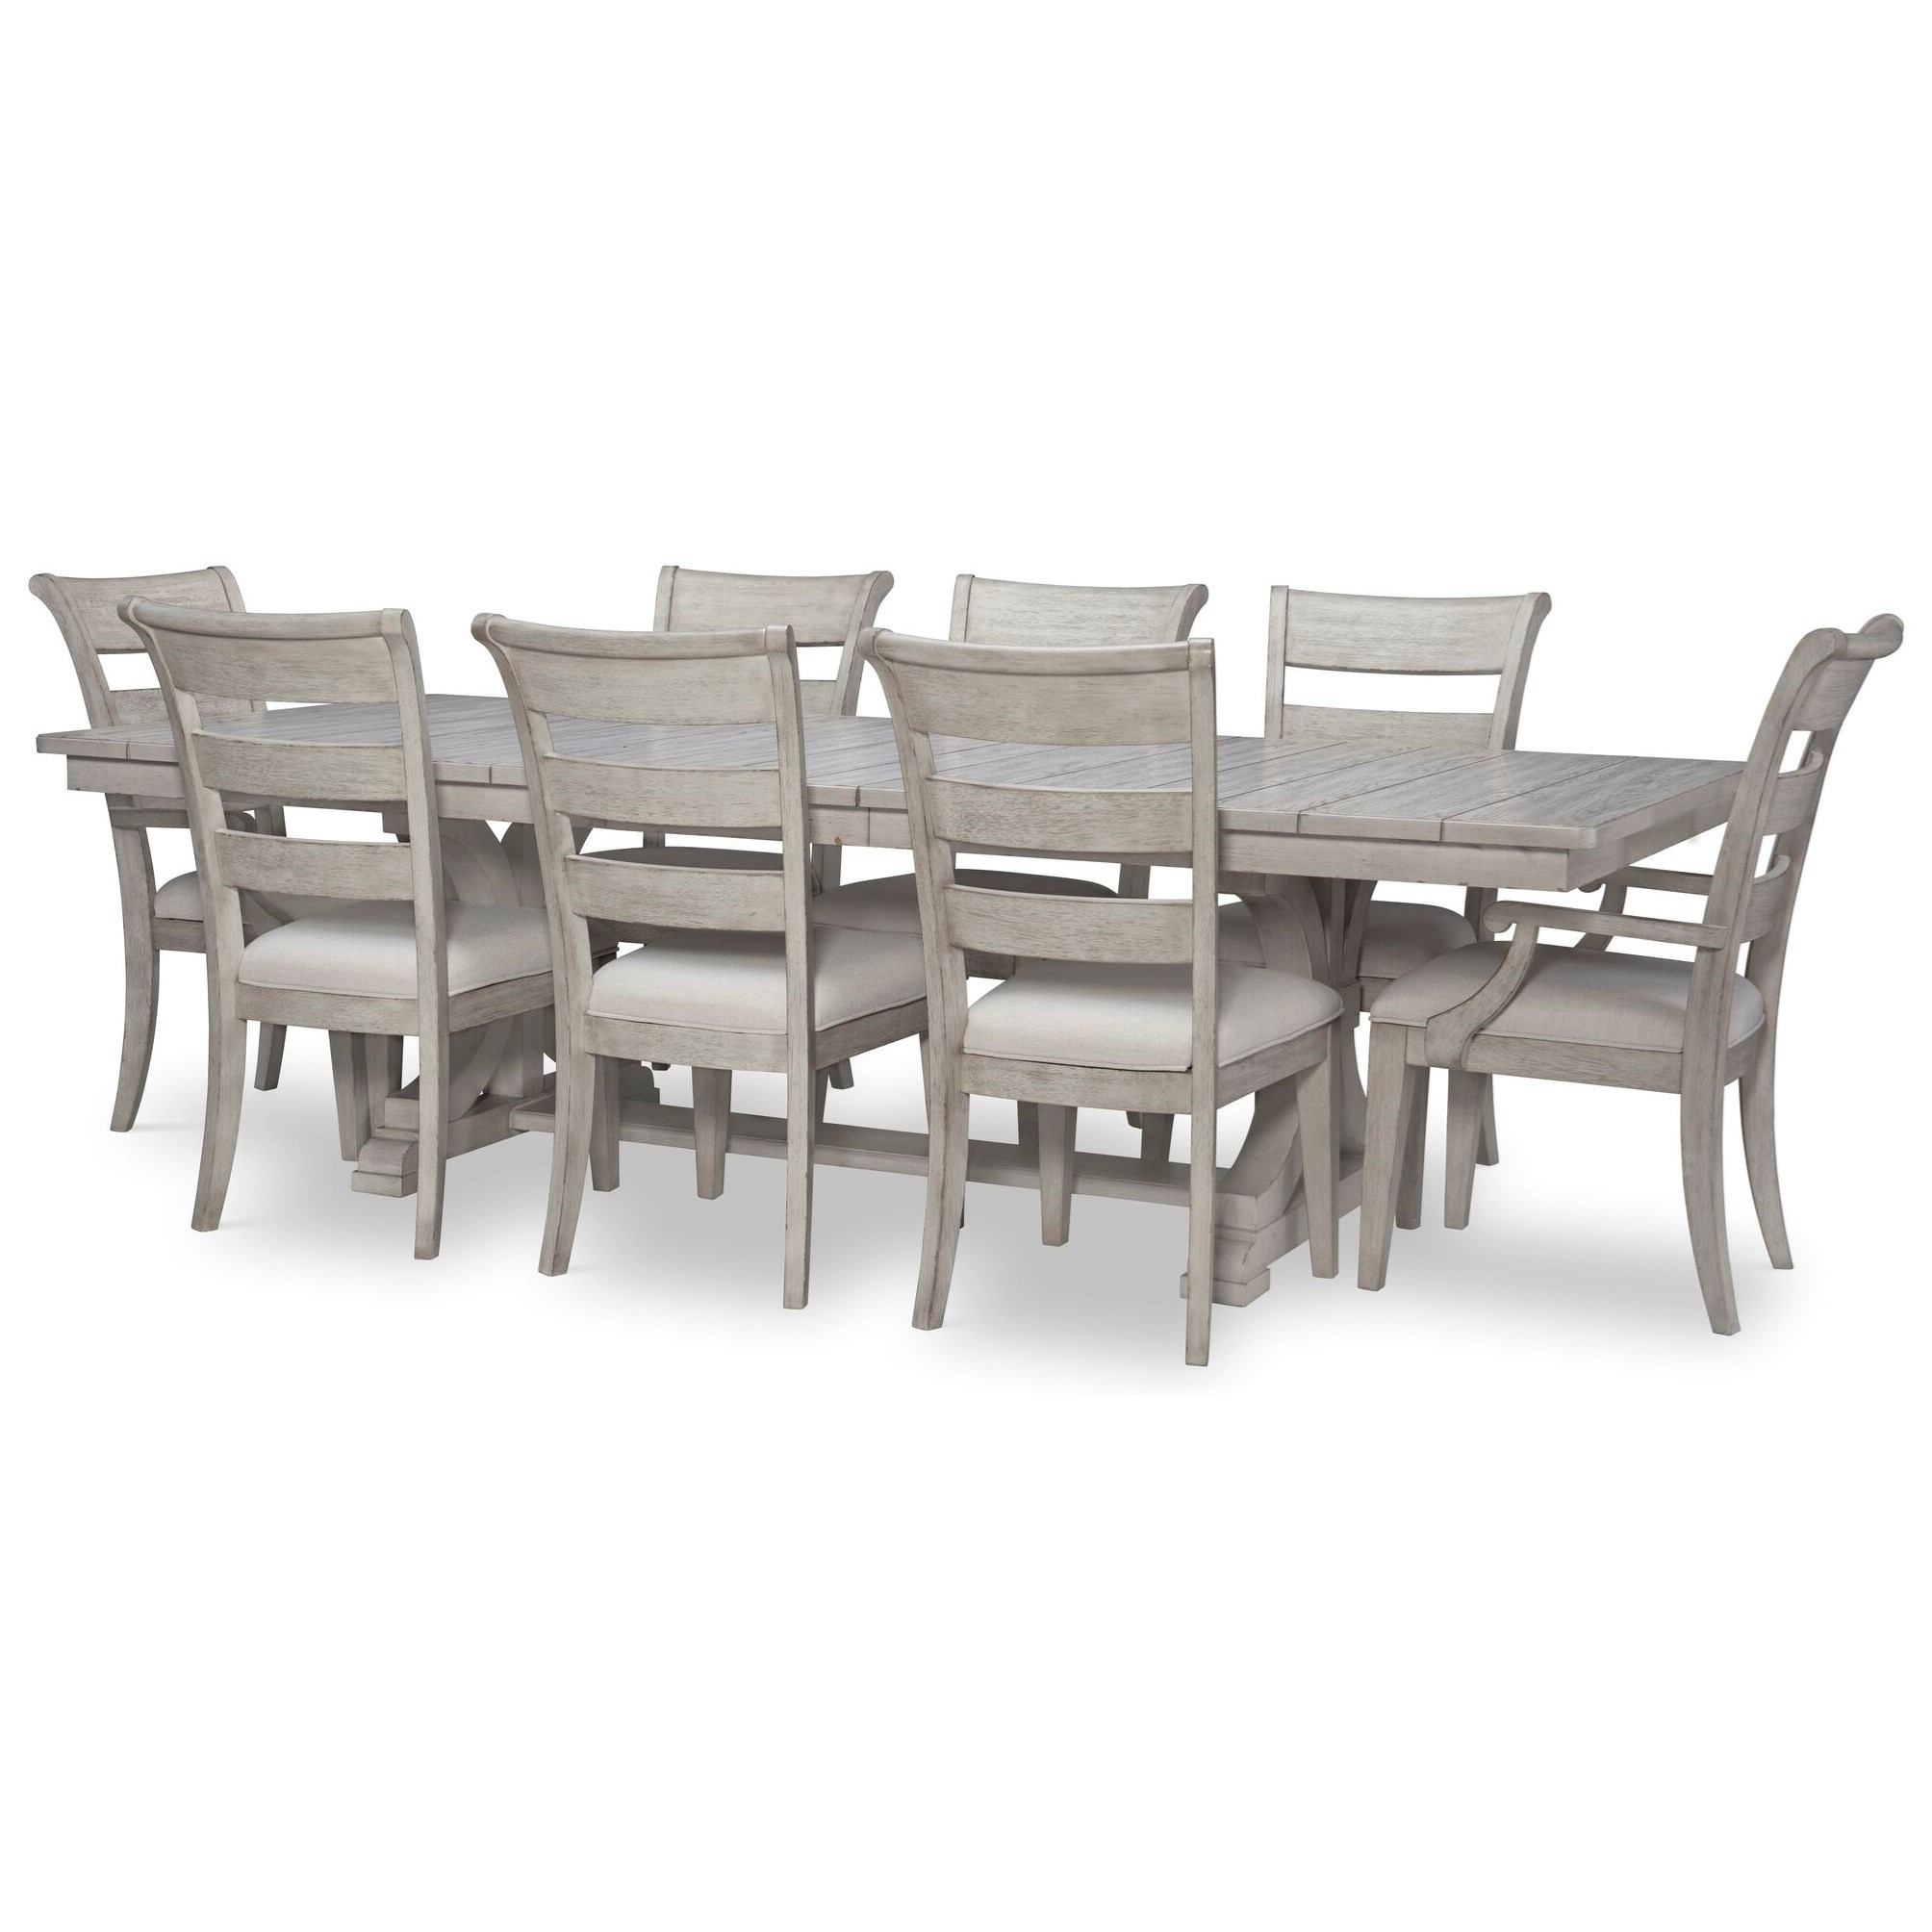 Belhaven 9-Piece Table and Chair Set by Legacy Classic at Johnny Janosik